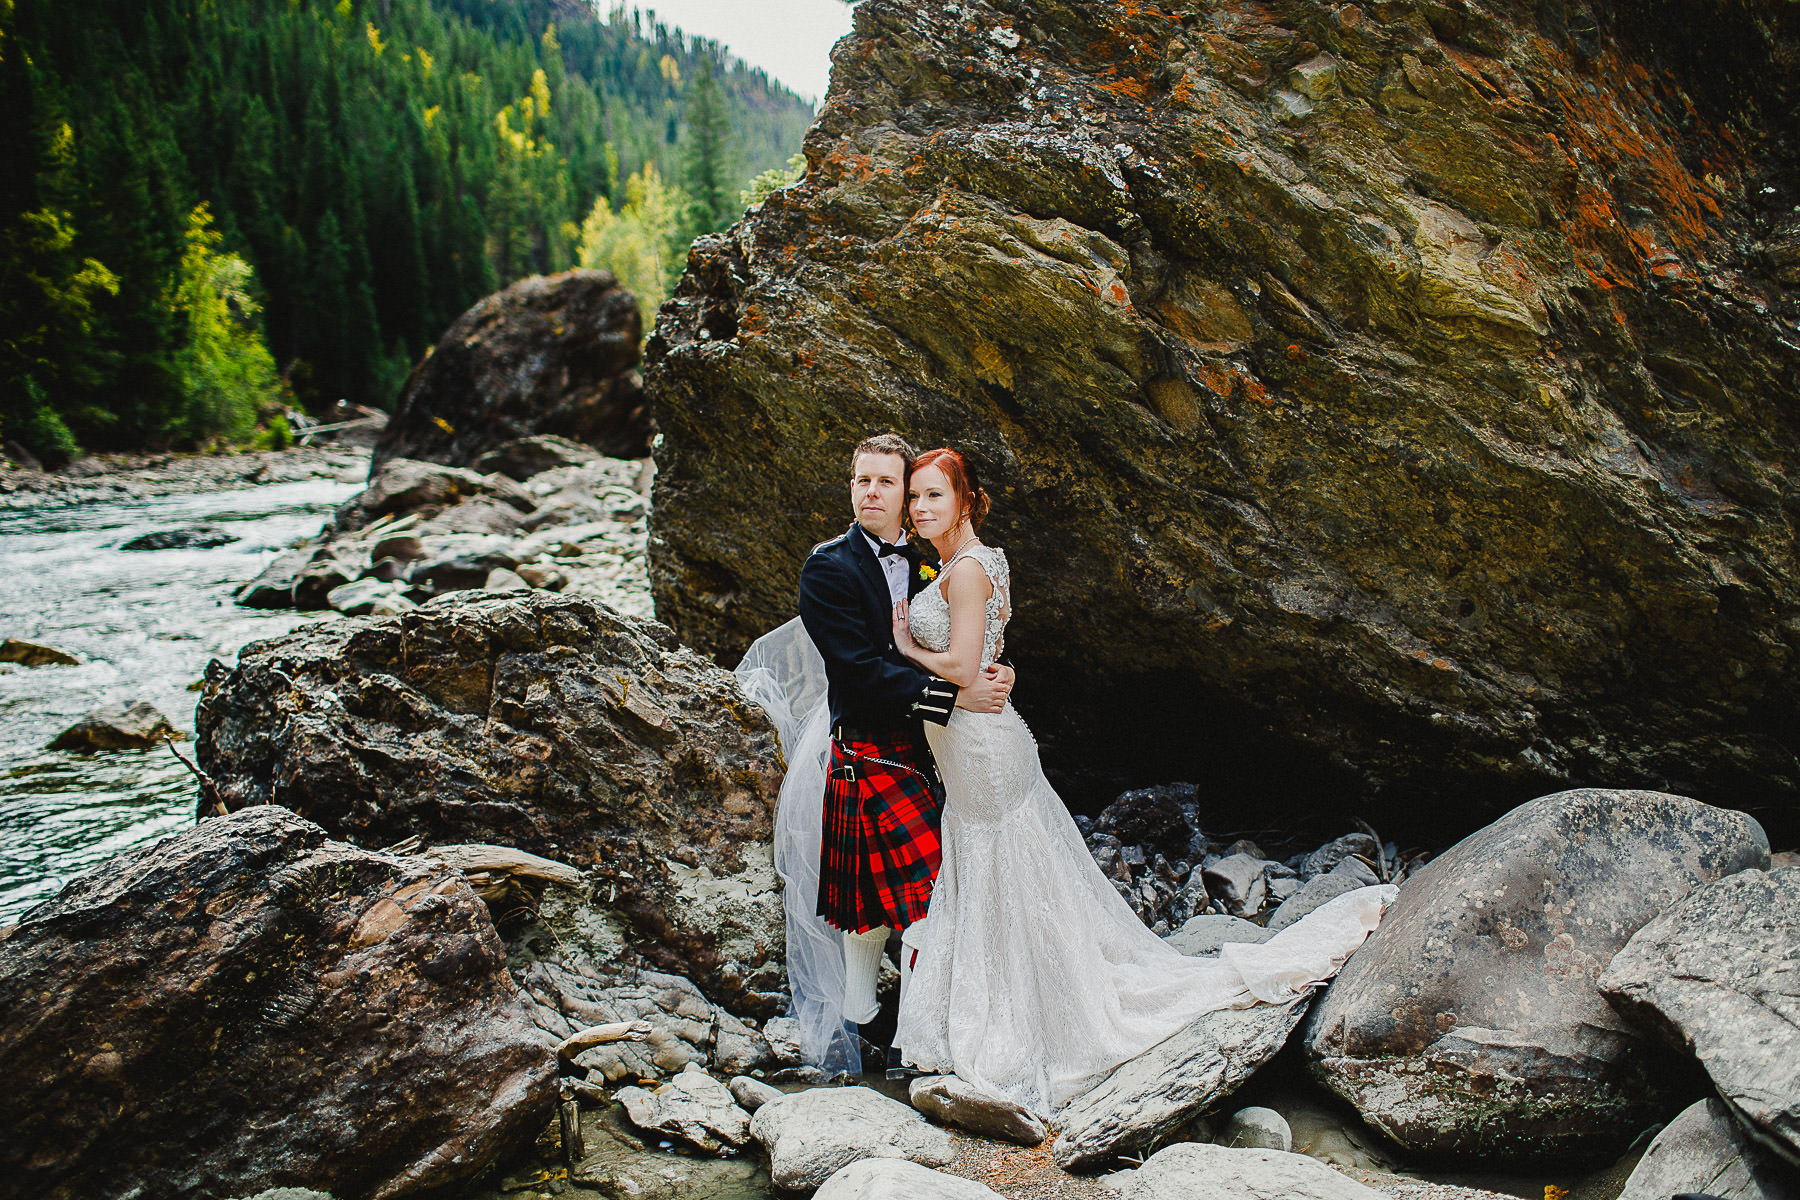 Groom in kilt at Panorama Mountain Resort